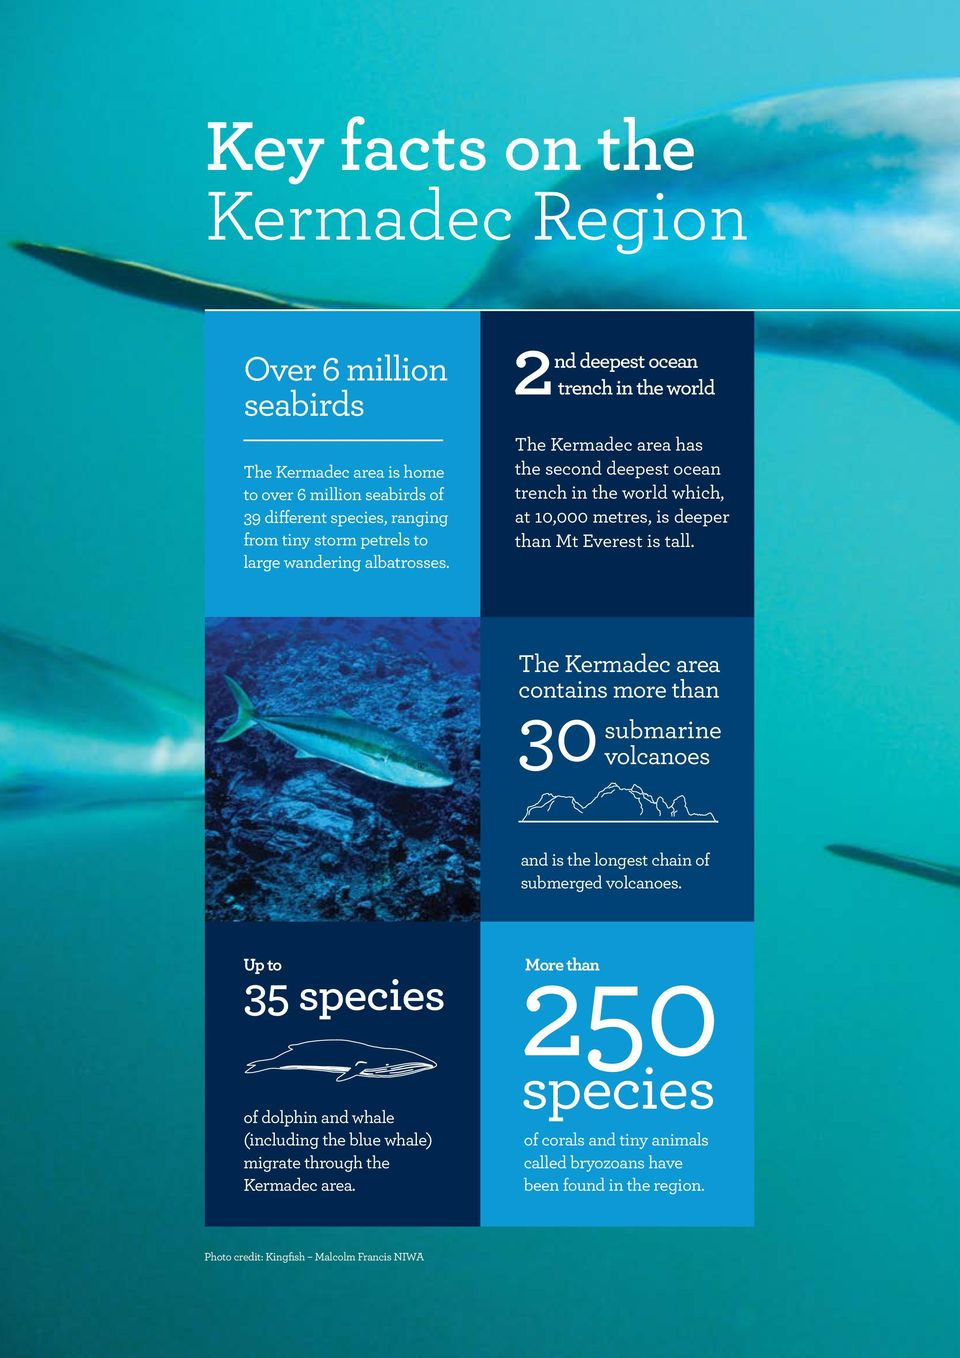 2 nd deepest ocean trench in the world The Kermadec area has the second deepest ocean trench in the world which, at 10,000 metres, is deeper than Mt Everest is tall.